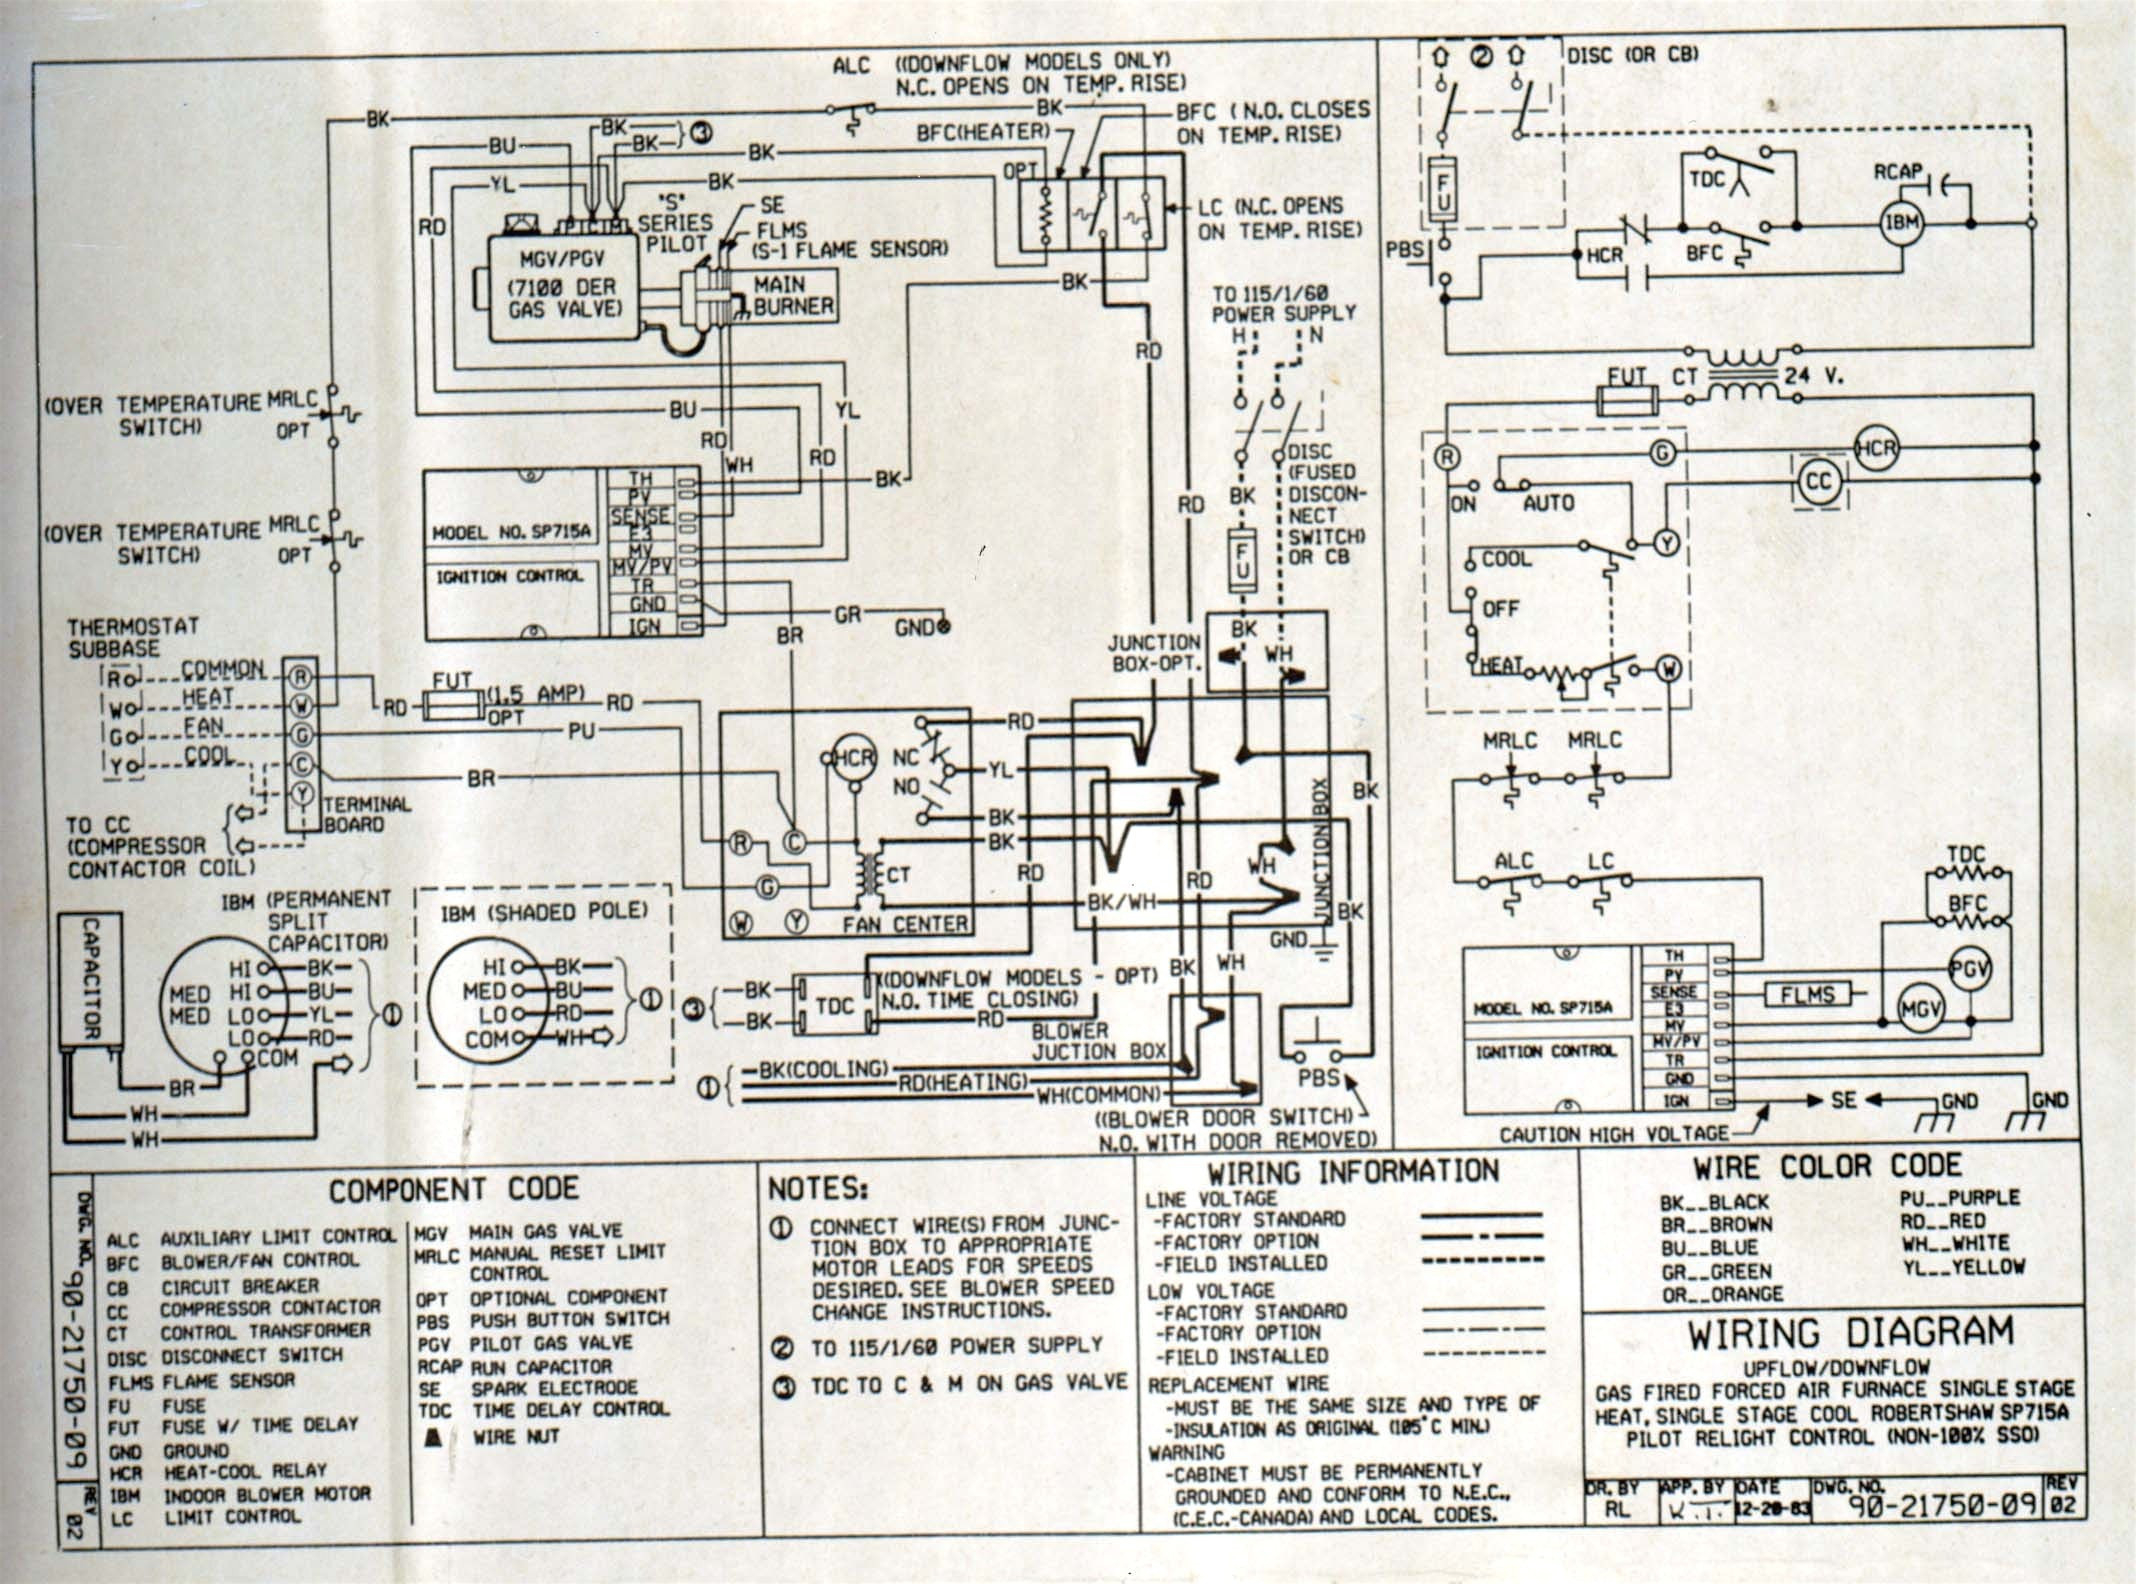 gmp075 3 wiring diagram Download-goodman manufacturing wiring diagrams wire center u2022 rh aktivagroup co Goodman AVPTC Wiring Diagram 17-h